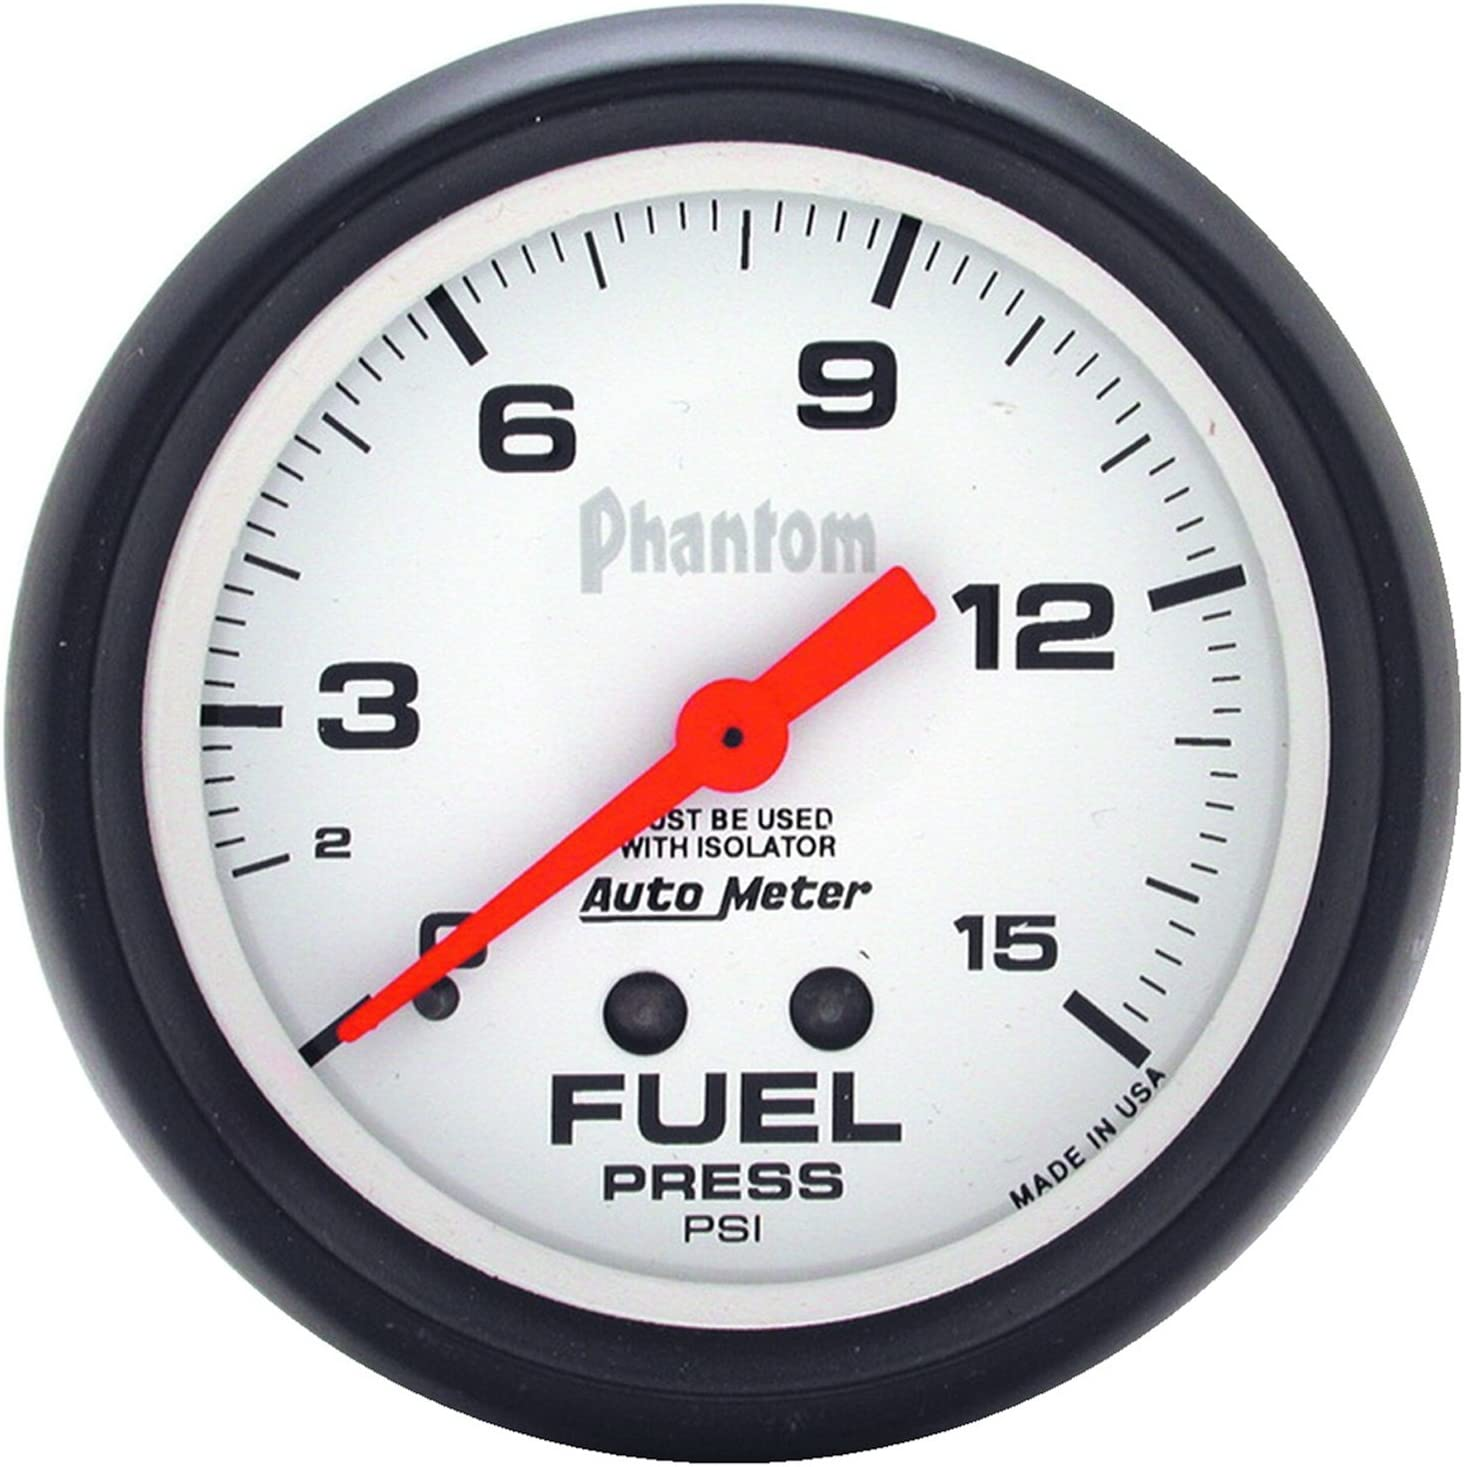 Auto Meter 5813 Phantom Pressure Mechanical Gauge Courier Max 56% OFF shipping free Fuel